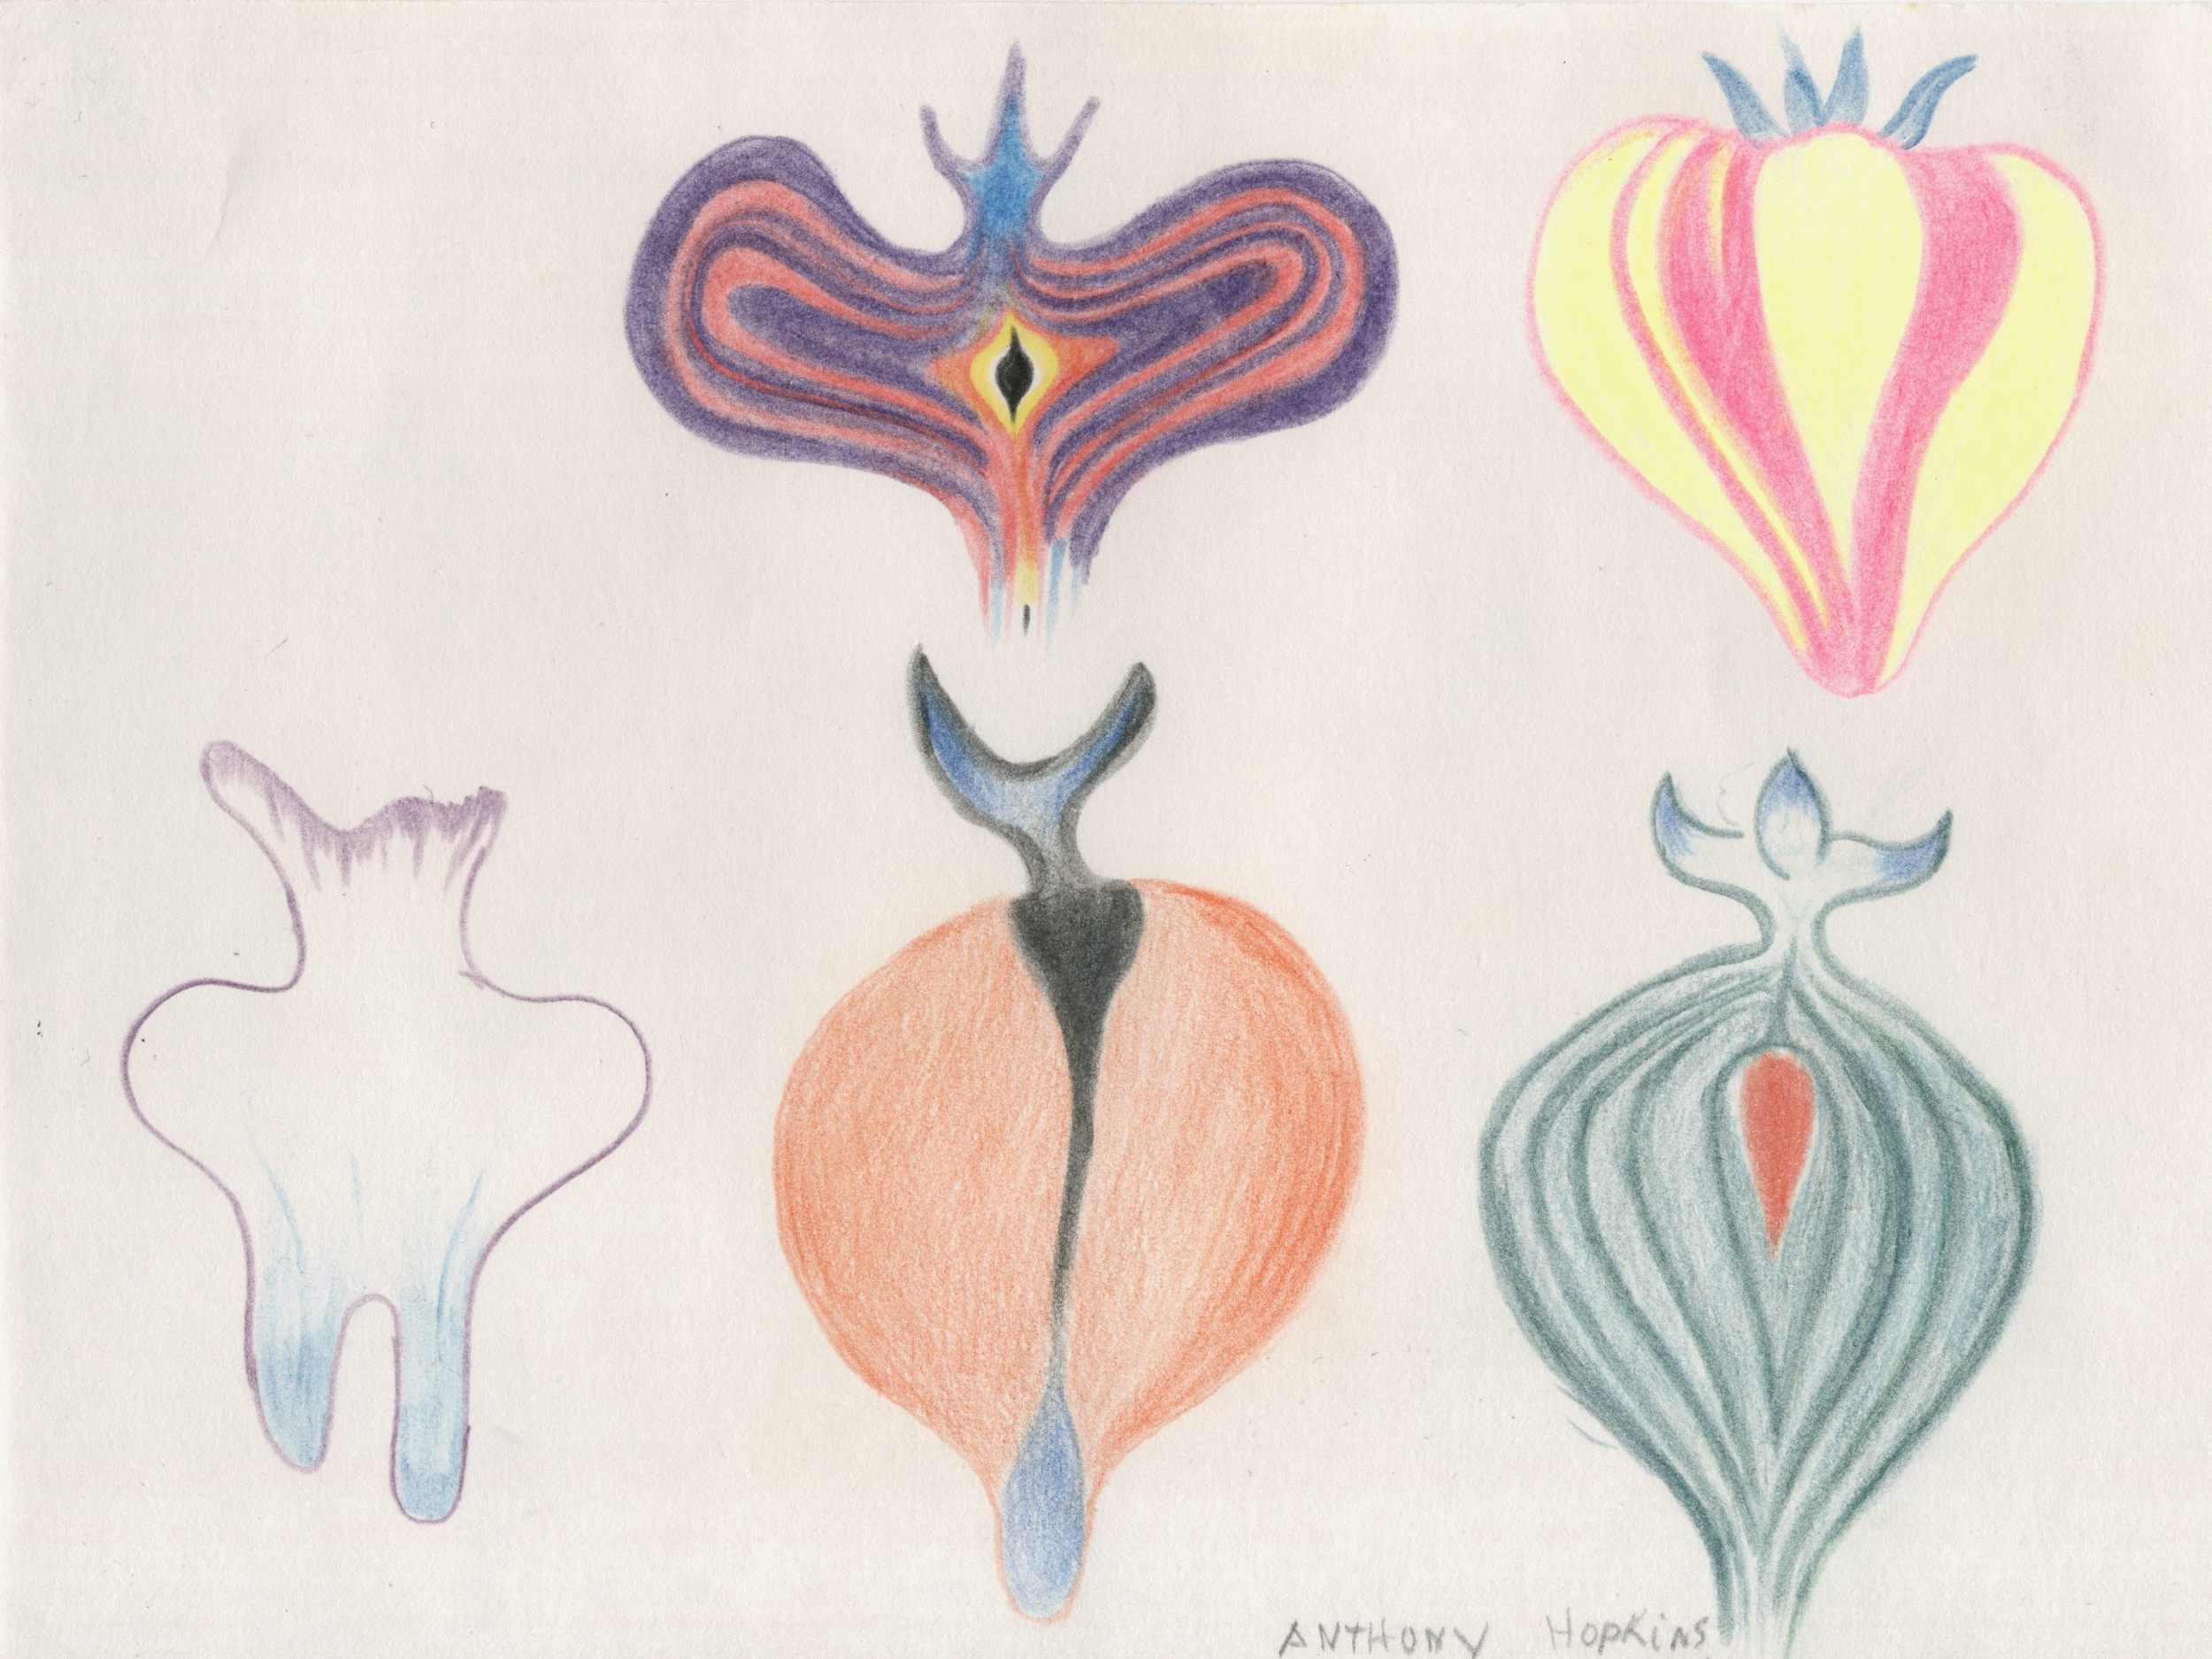 Anthony Hopkins    Wizard Lights in Solstice, I (92)  , 1998 Colored pencil/paper 7 x 9.5 in (17.8 x 24.1 cm) AH 44